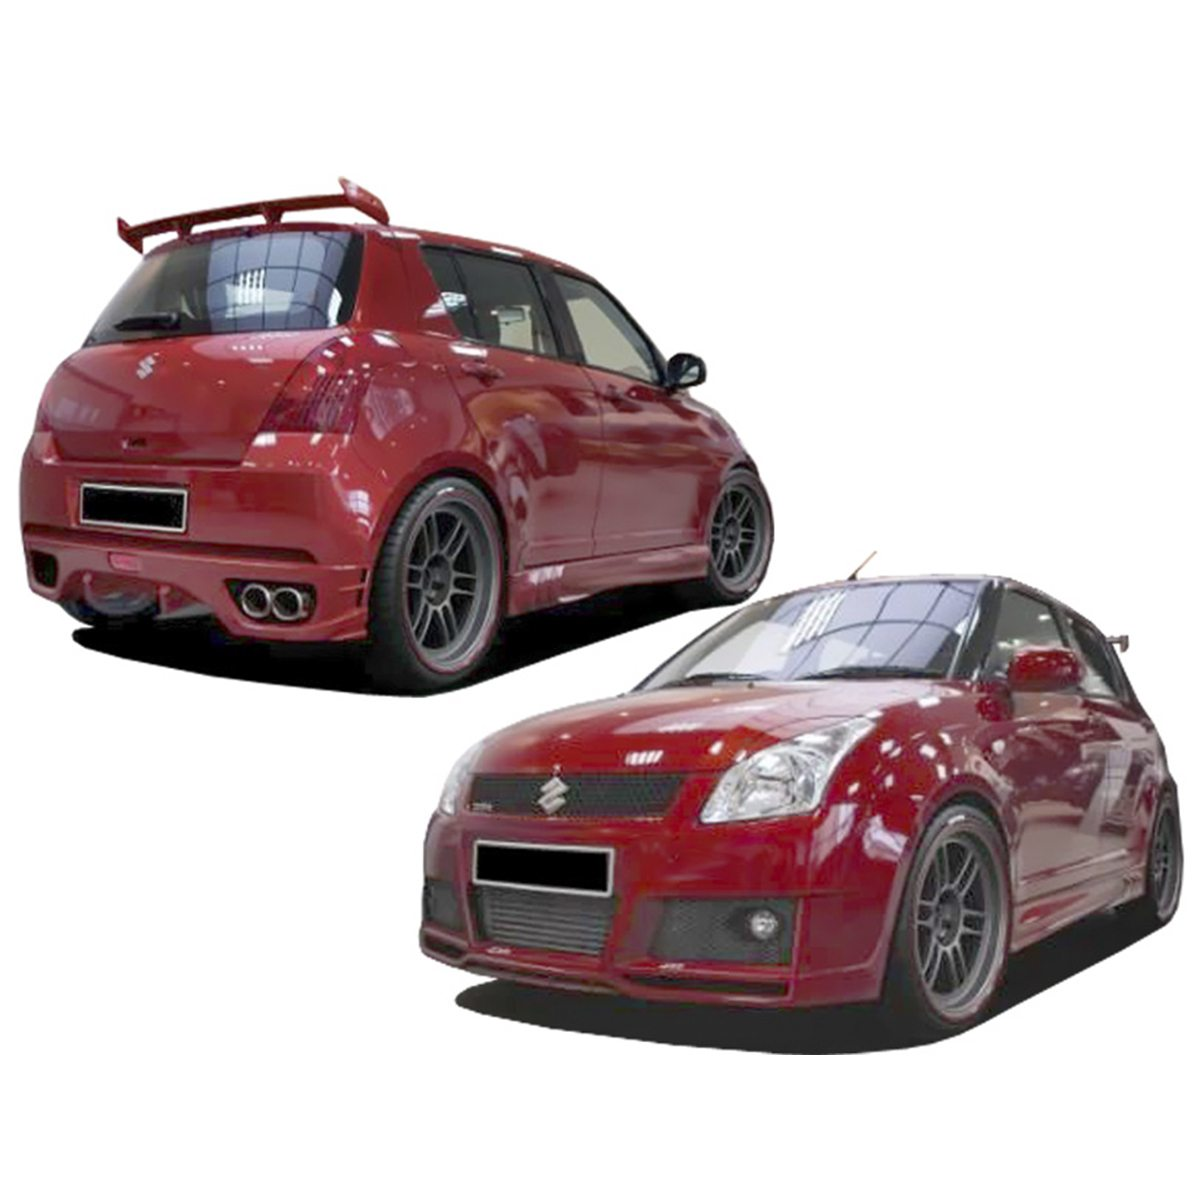 Suzuki-Swift-05-KIT-KTS106